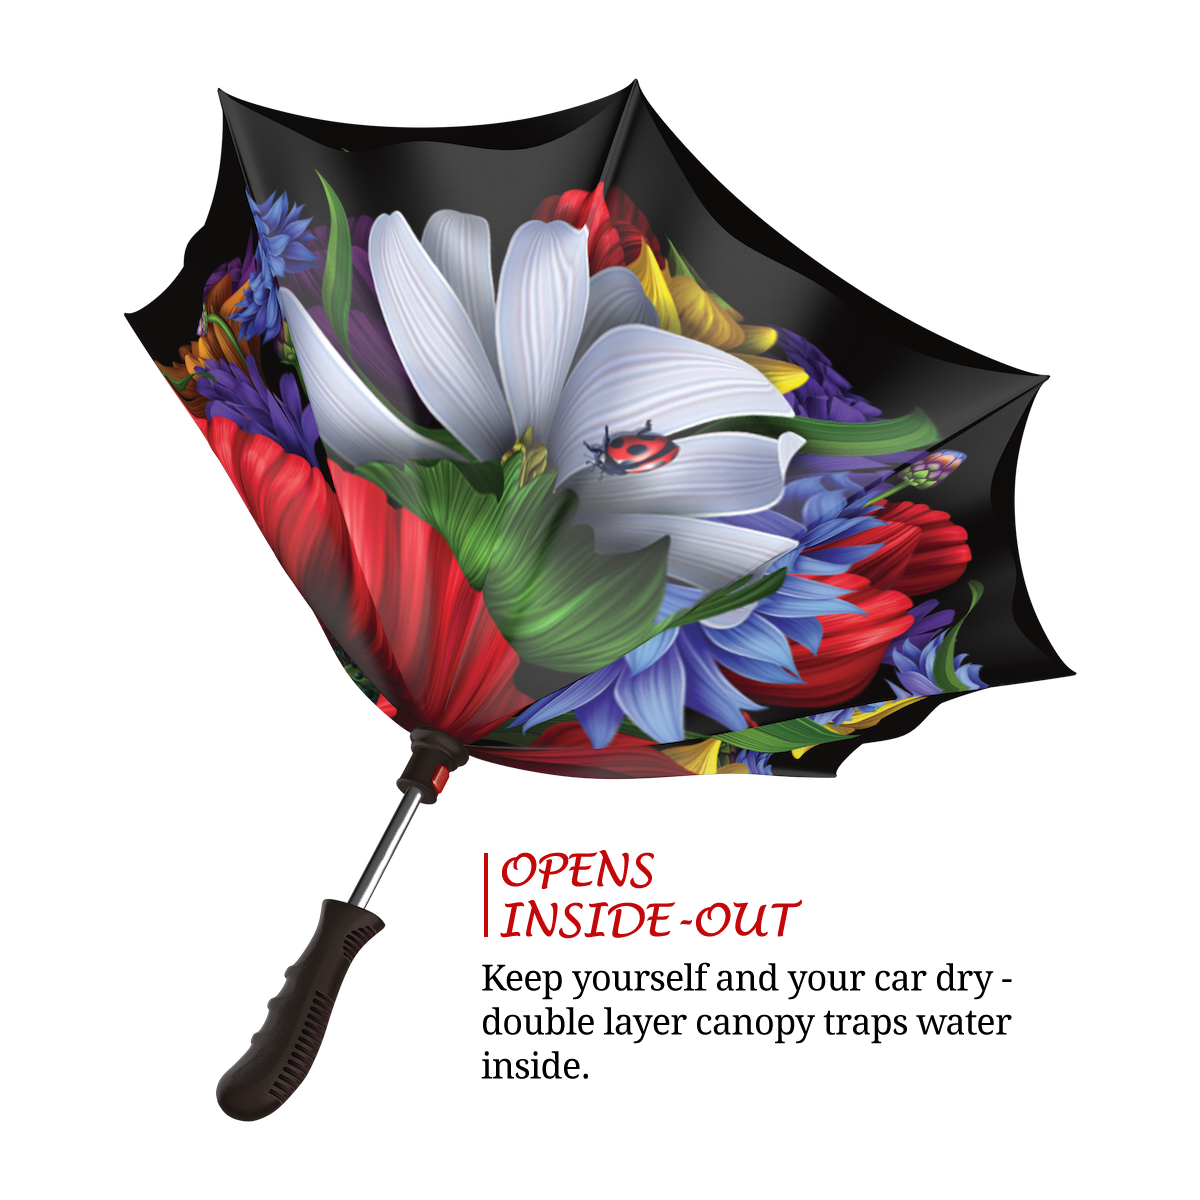 Wild Poppies Inverted rain umbrella